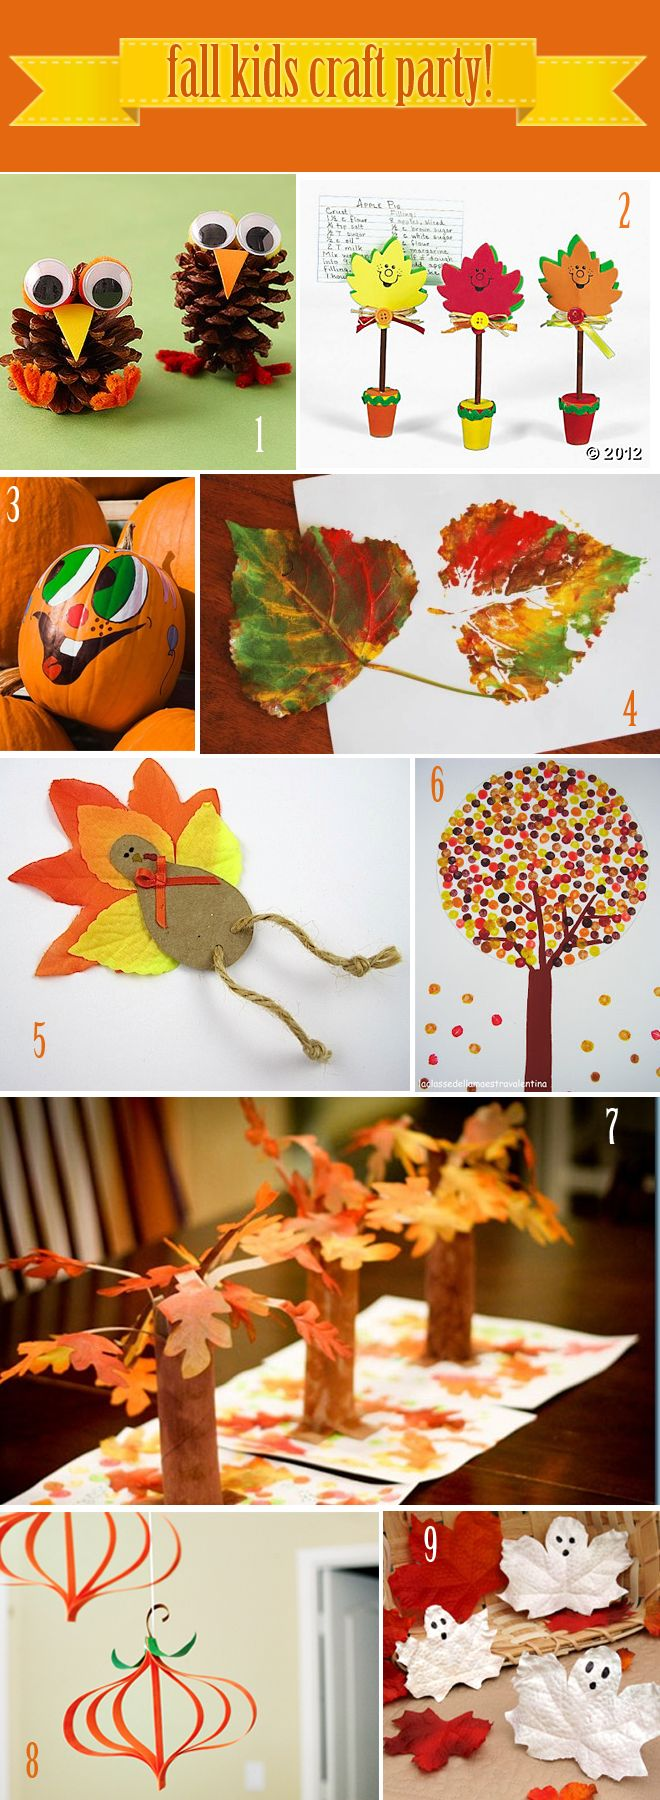 9 Cute Fall Craft Ideas for Kids | Pizzazzerie